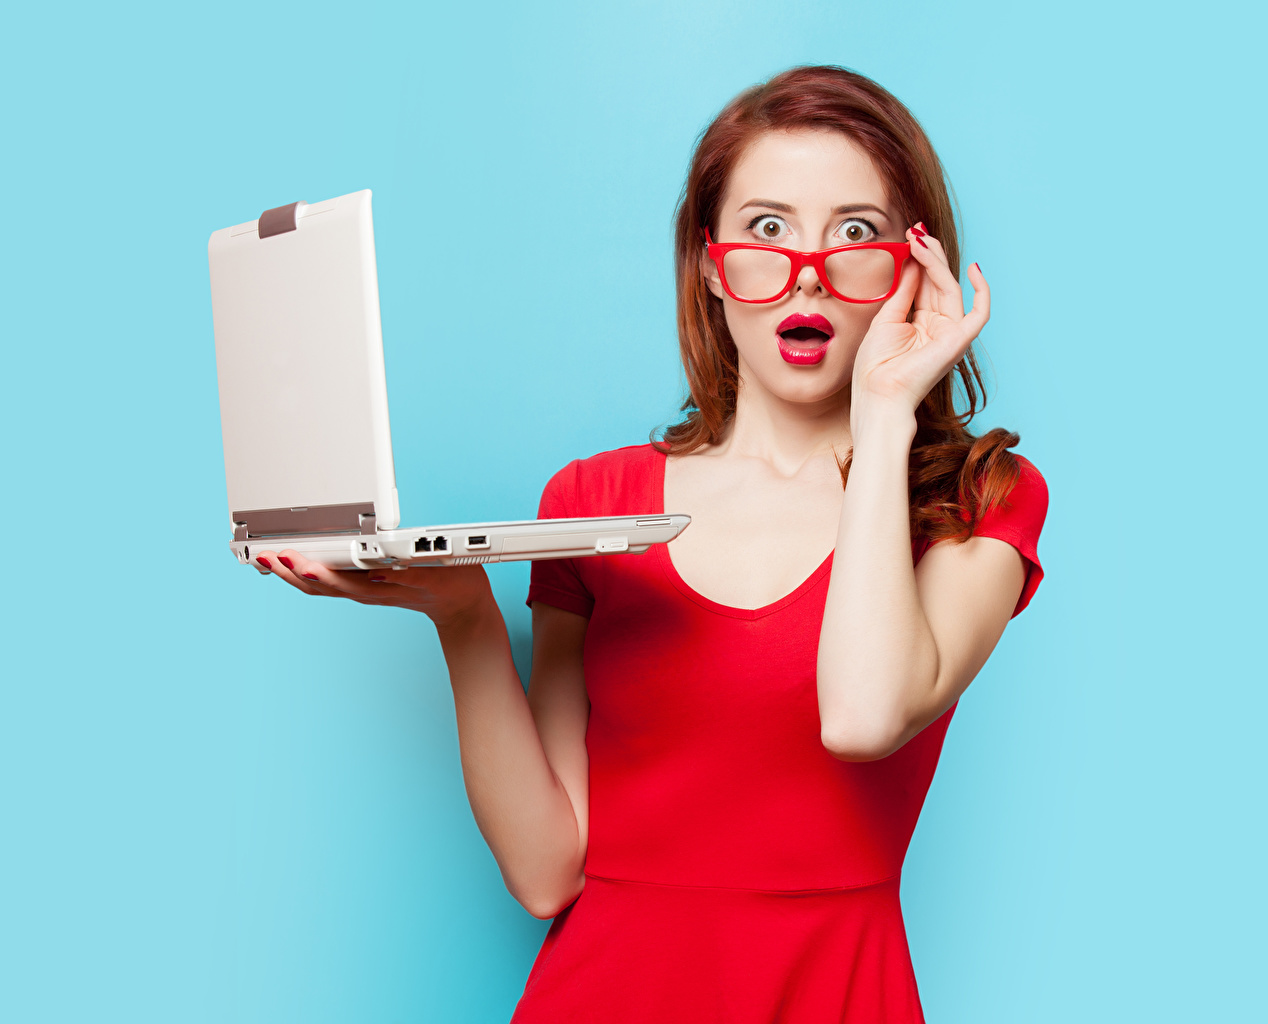 Picture Laptops Redhead girl amazement Girls Hands eyeglasses Glance Red lips Colored background surprised Surprise emotion female young woman Glasses Staring